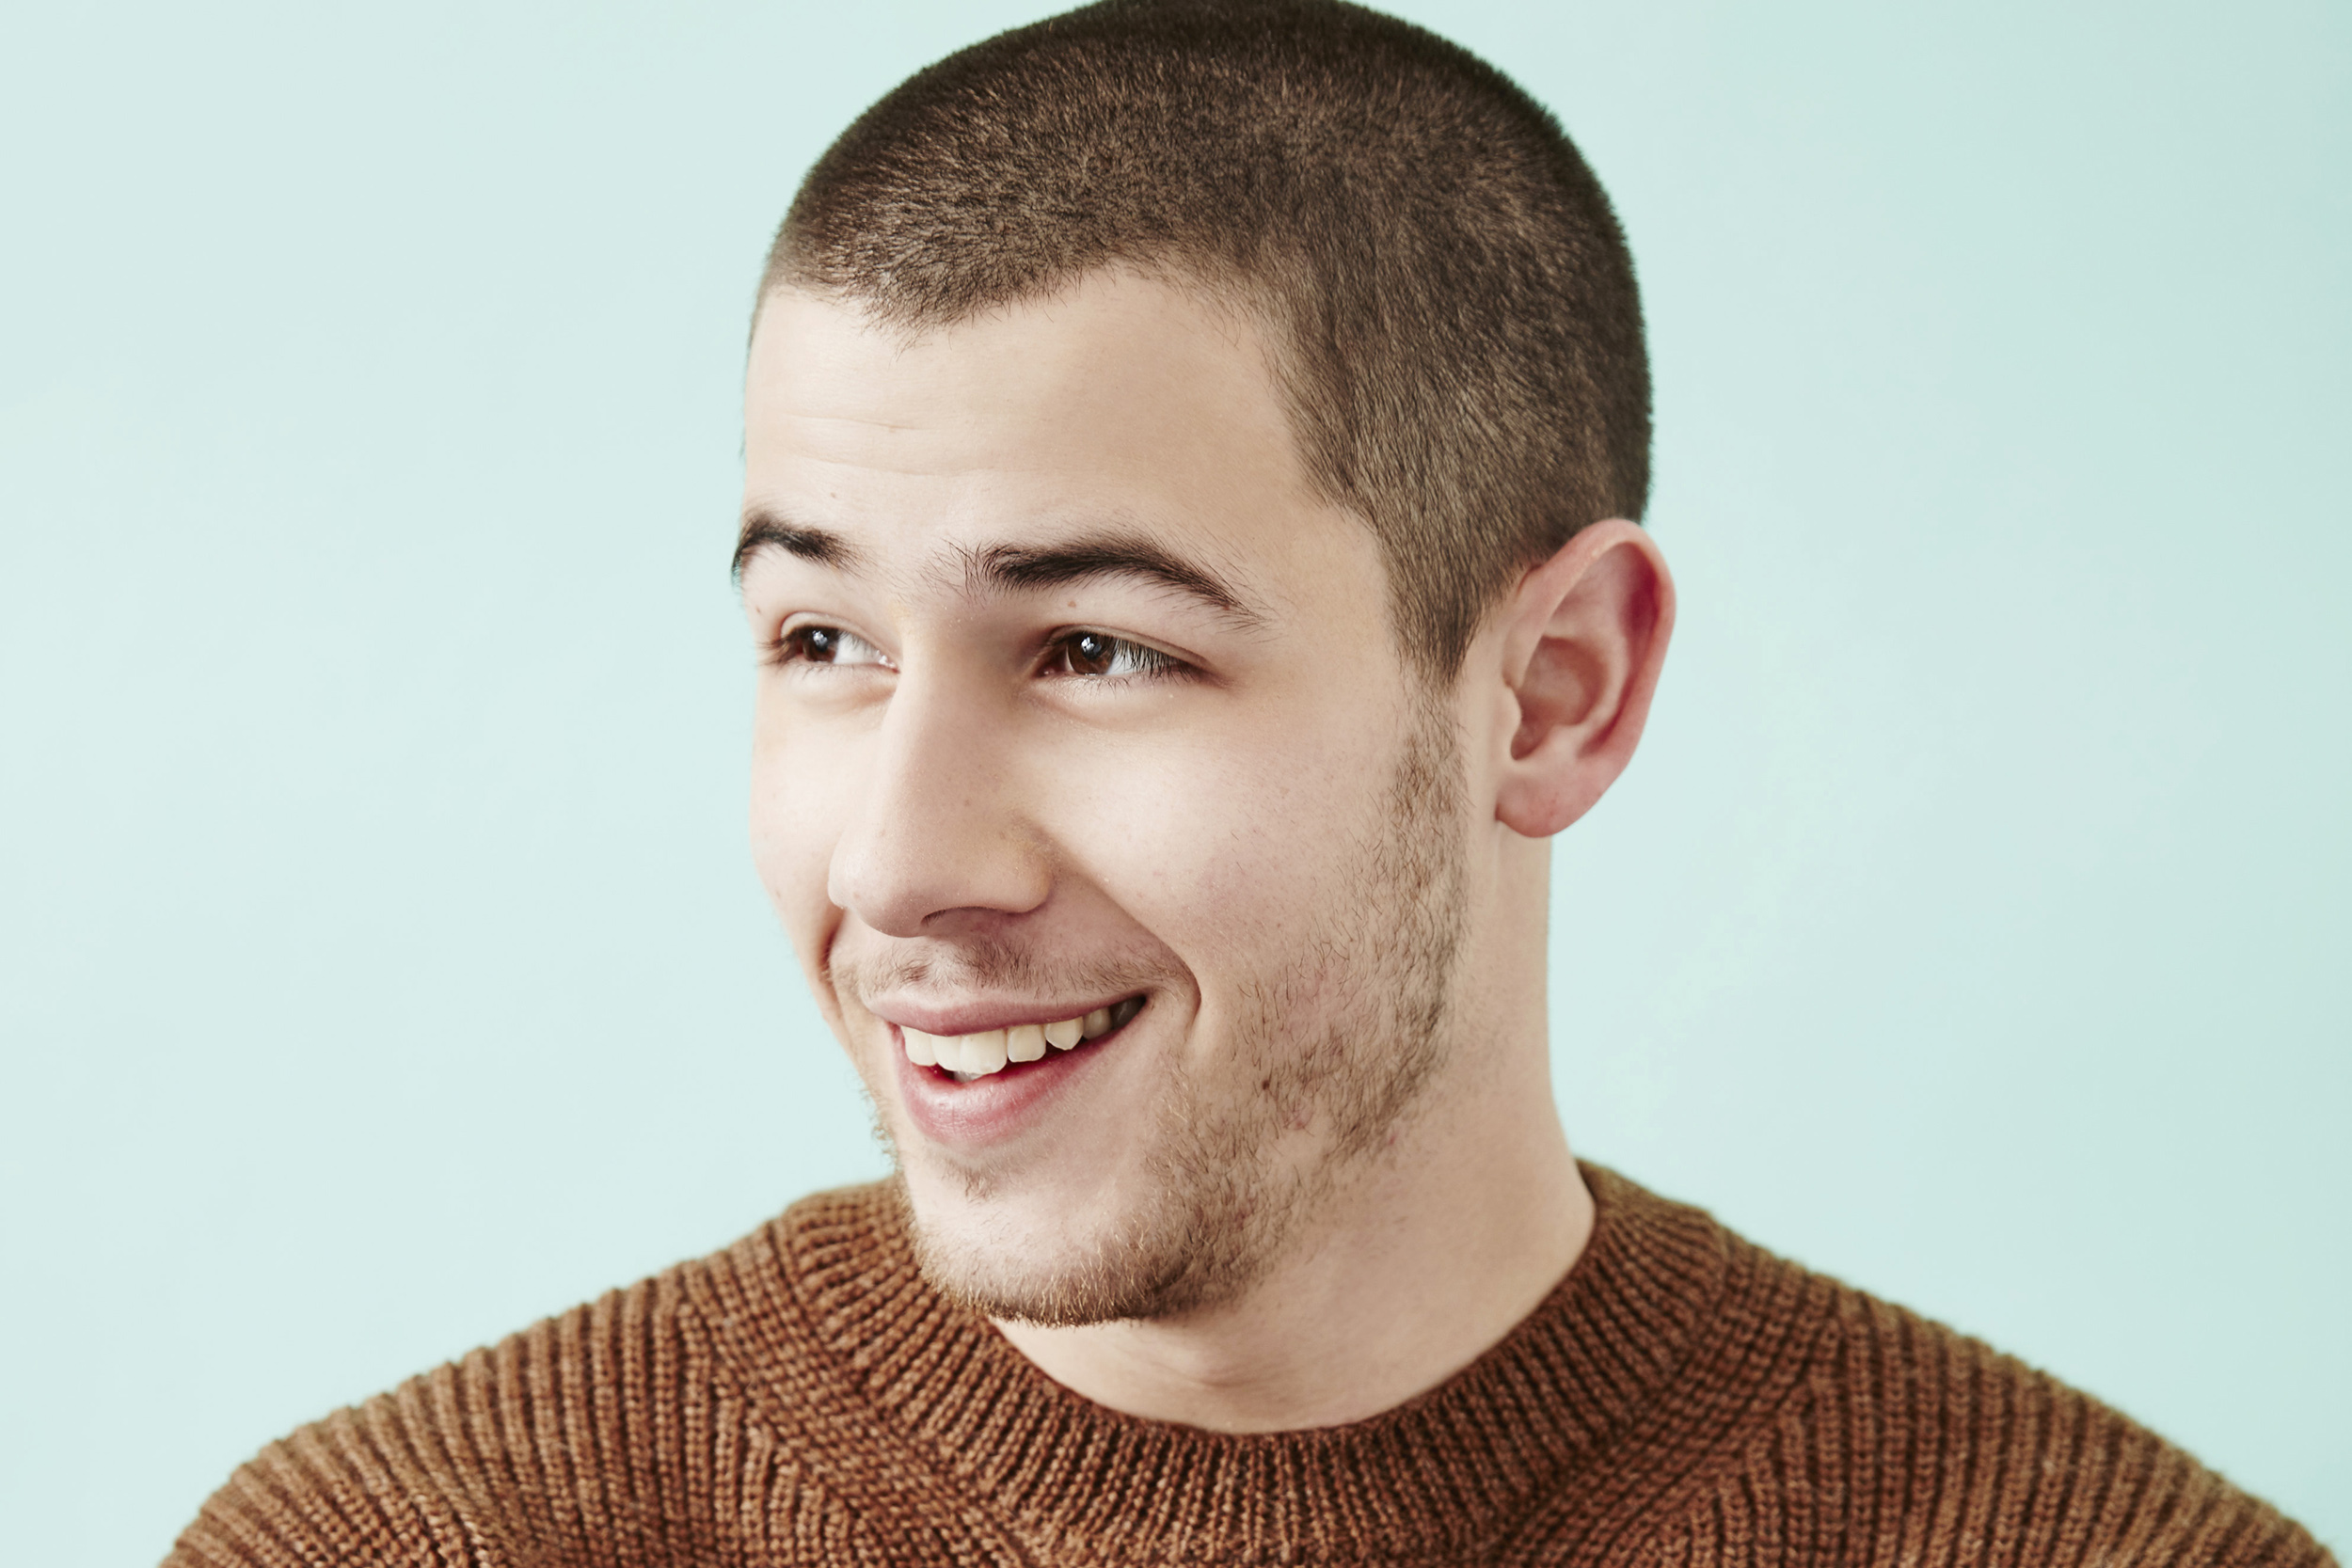 Nick Jonas of 'Goat' poses at the 2016 Sundance Film Festival Getty Images Portrait in Park City, Utah on Jan. 22, 2016.